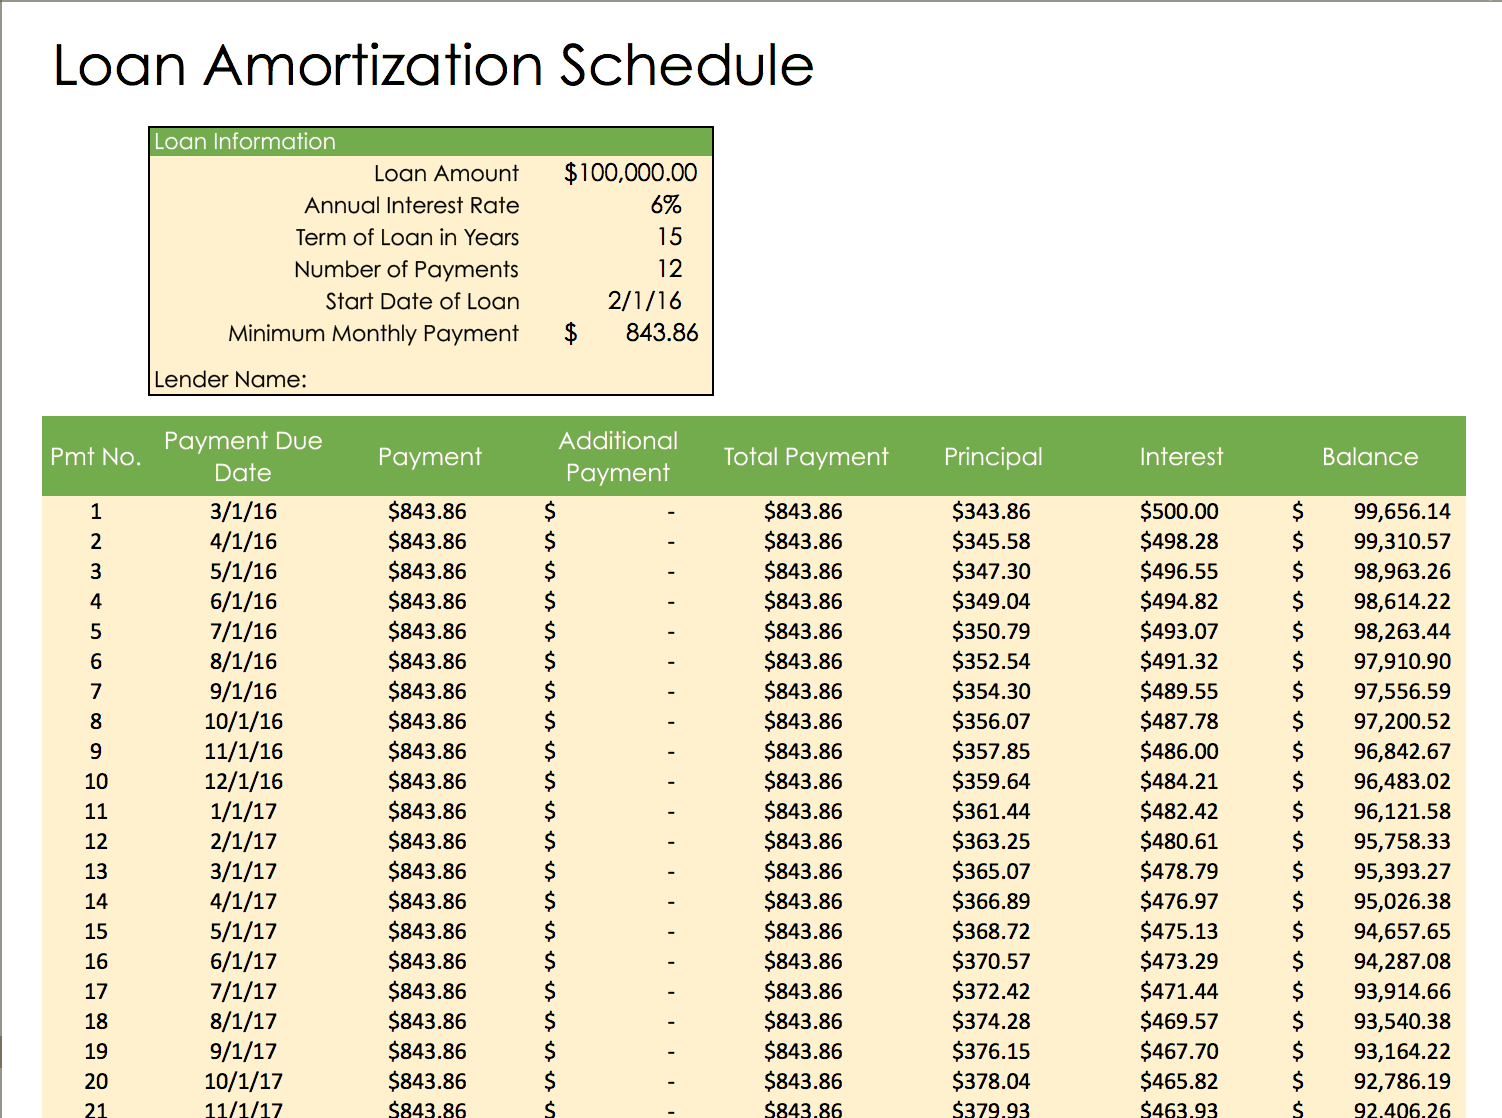 Free Weekly Schedule Templates For Excel Smartsheet – Loan Amortization Calculator Template